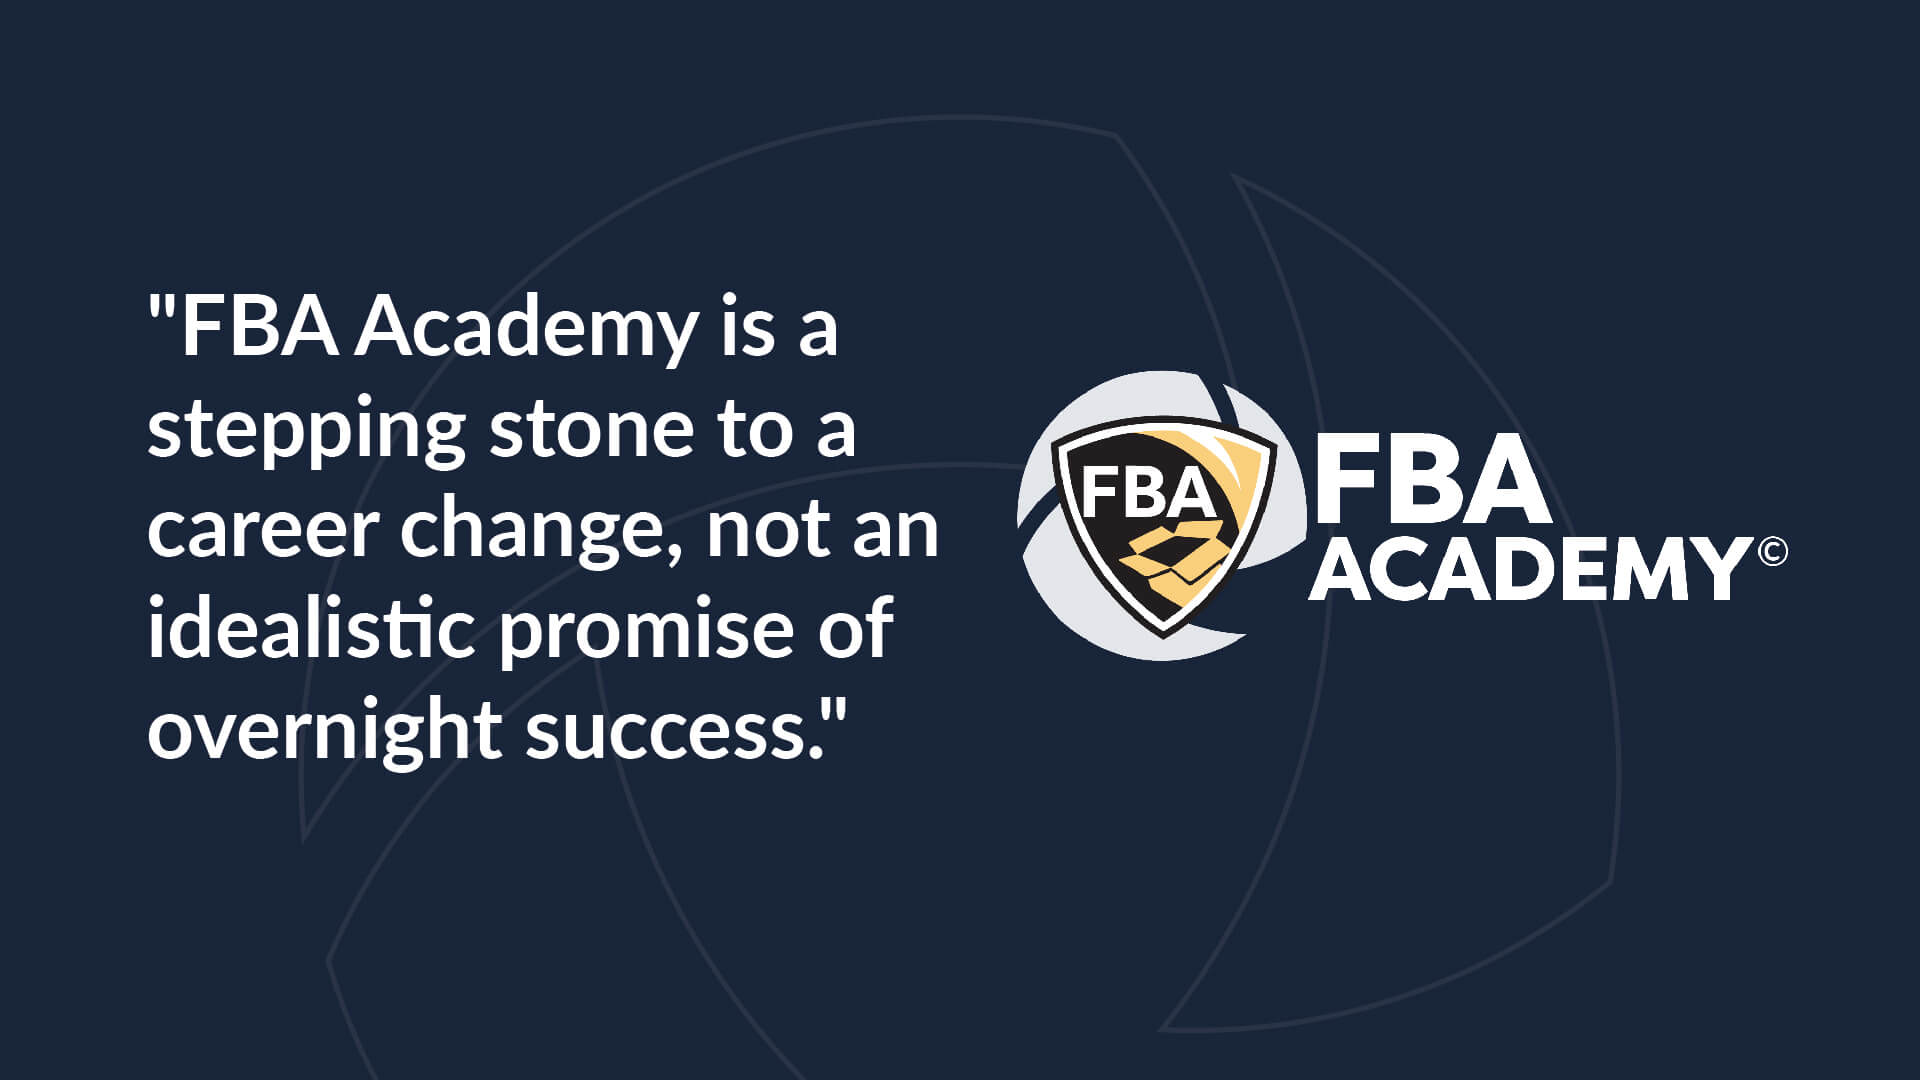 """""""FBA Academy is a stepping stone to a career change, not an idealistic promise of overnight success""""."""